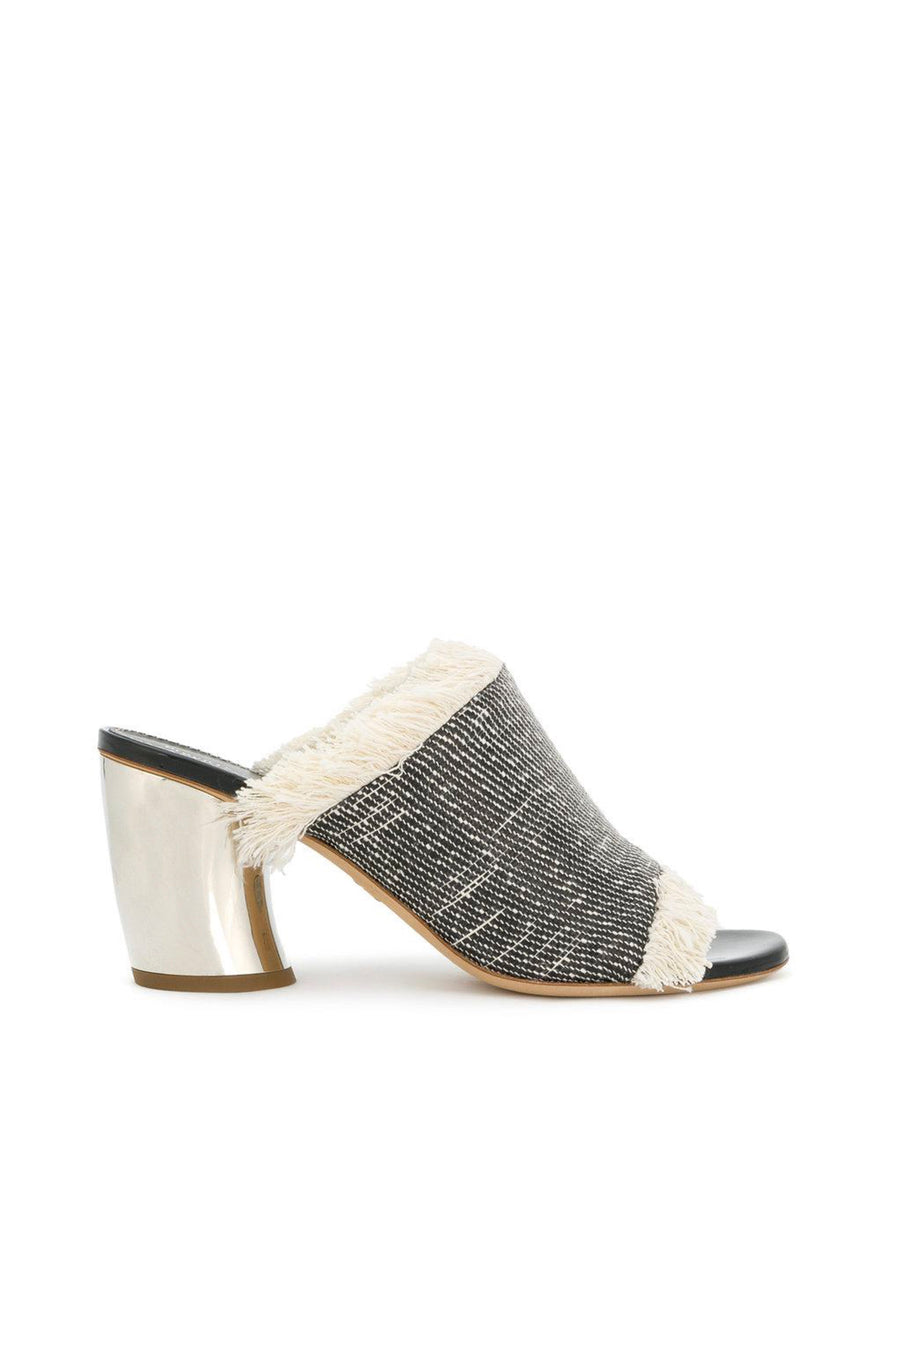 CANVAS RAFIA MULE